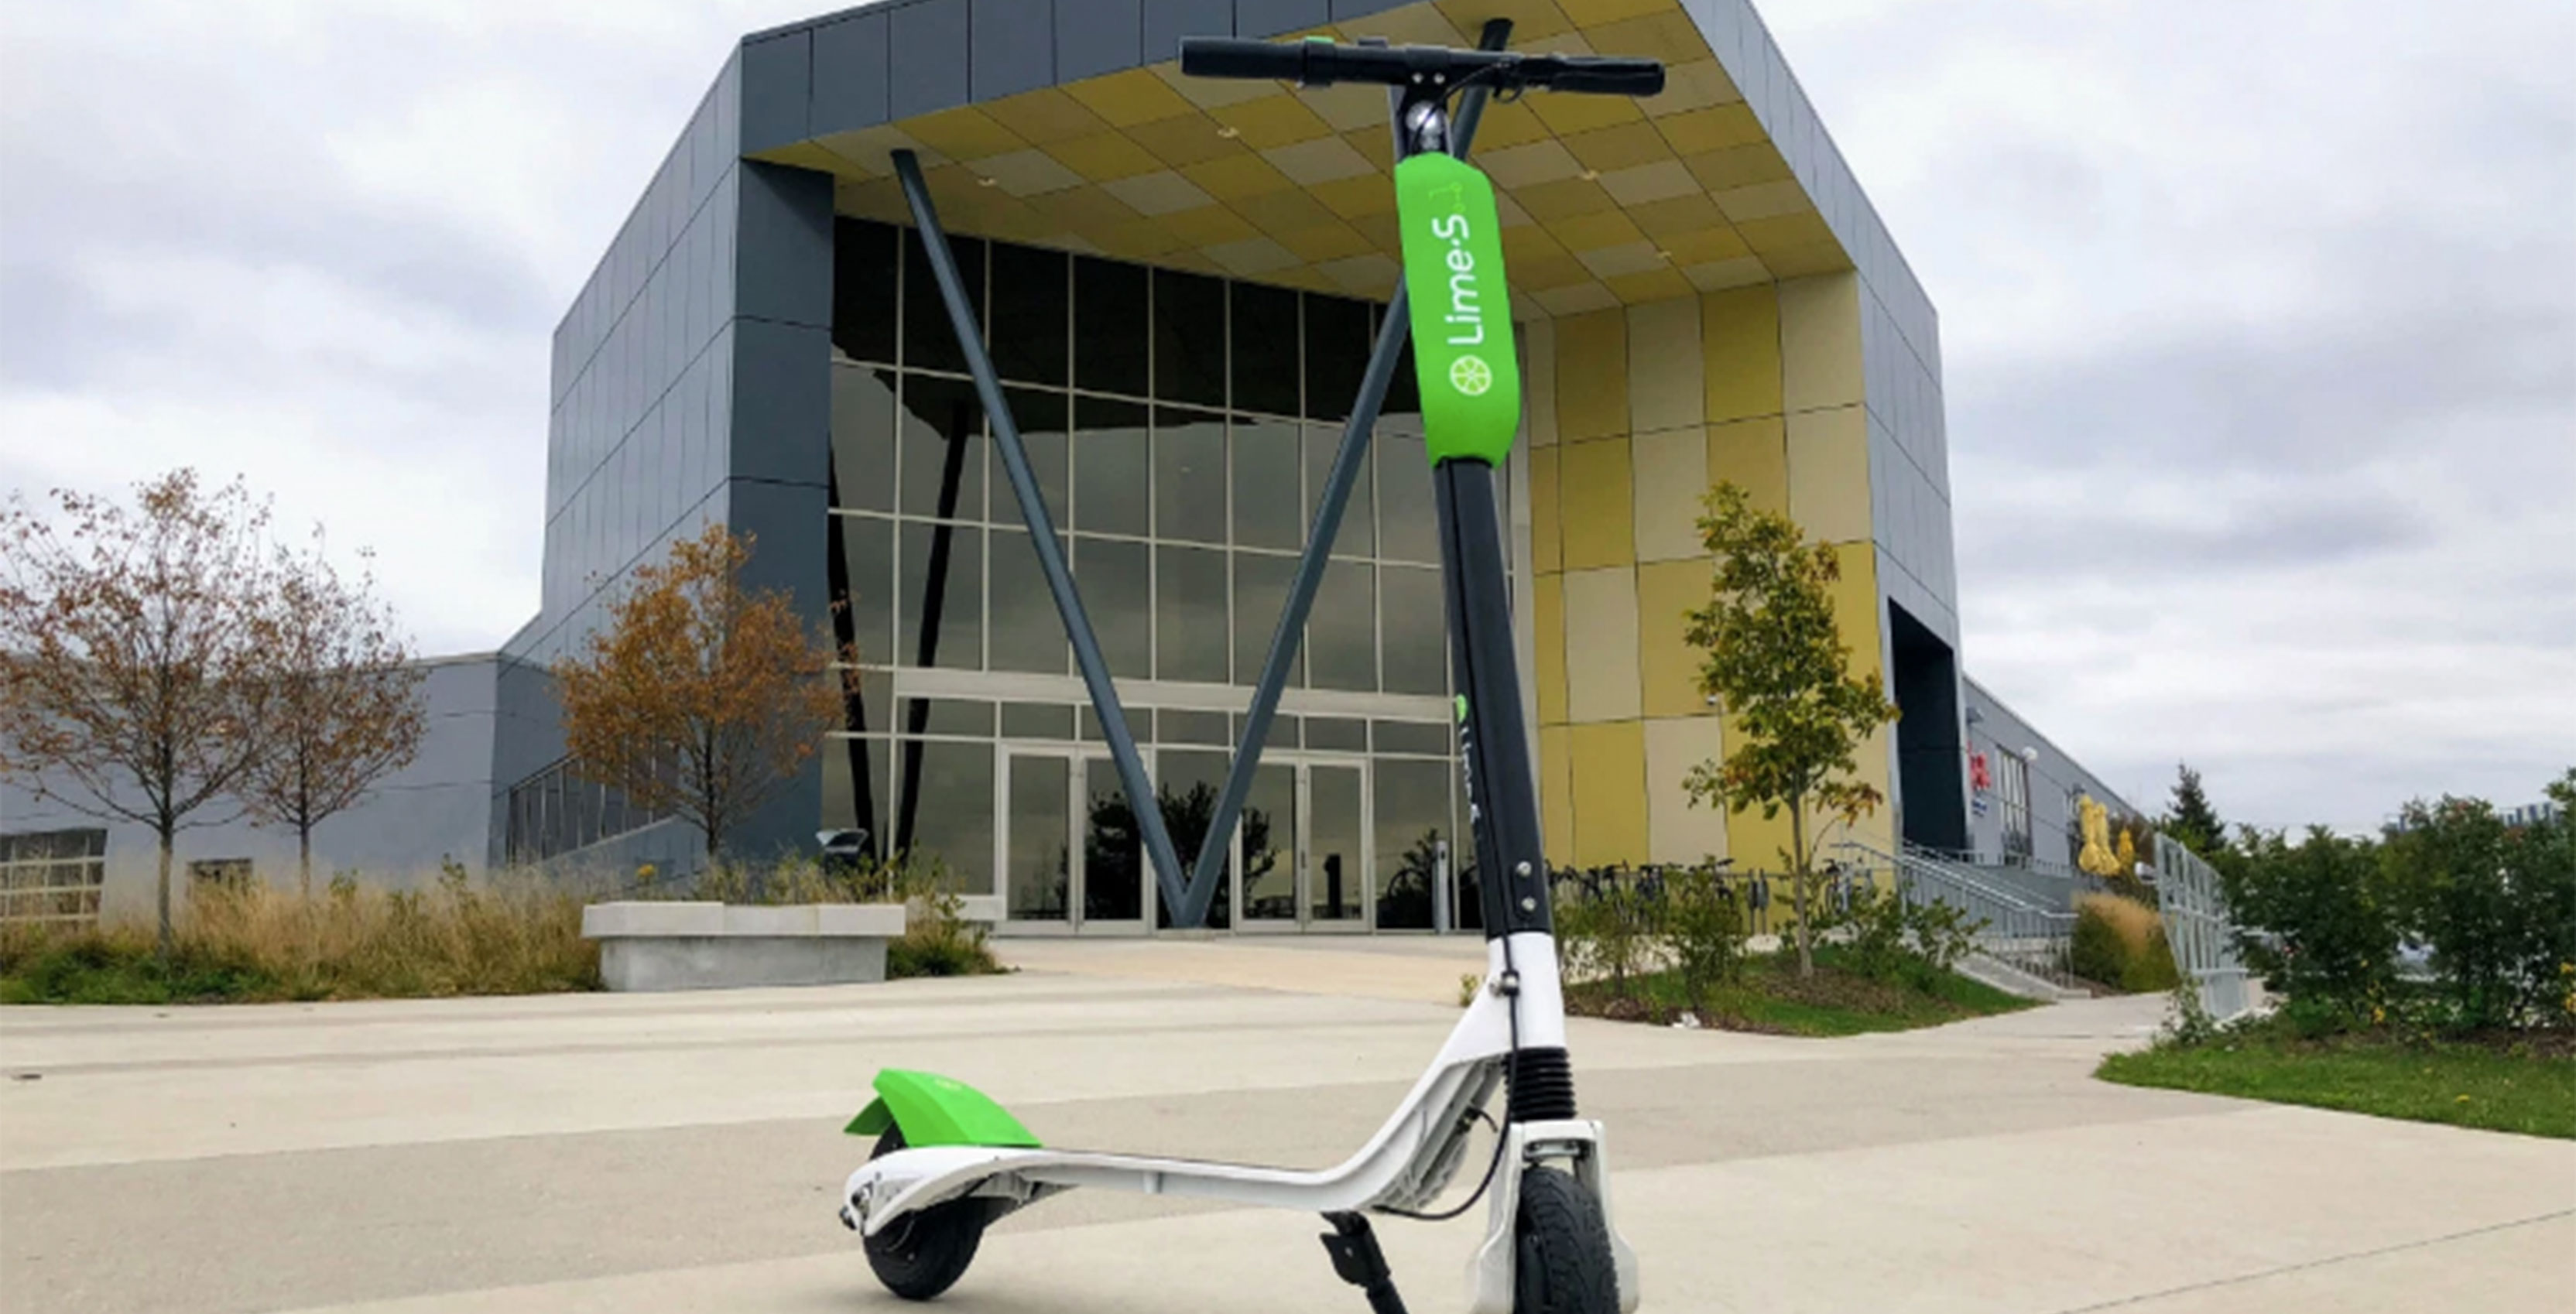 Lime 'in talks' to bring electric scooter rentals to